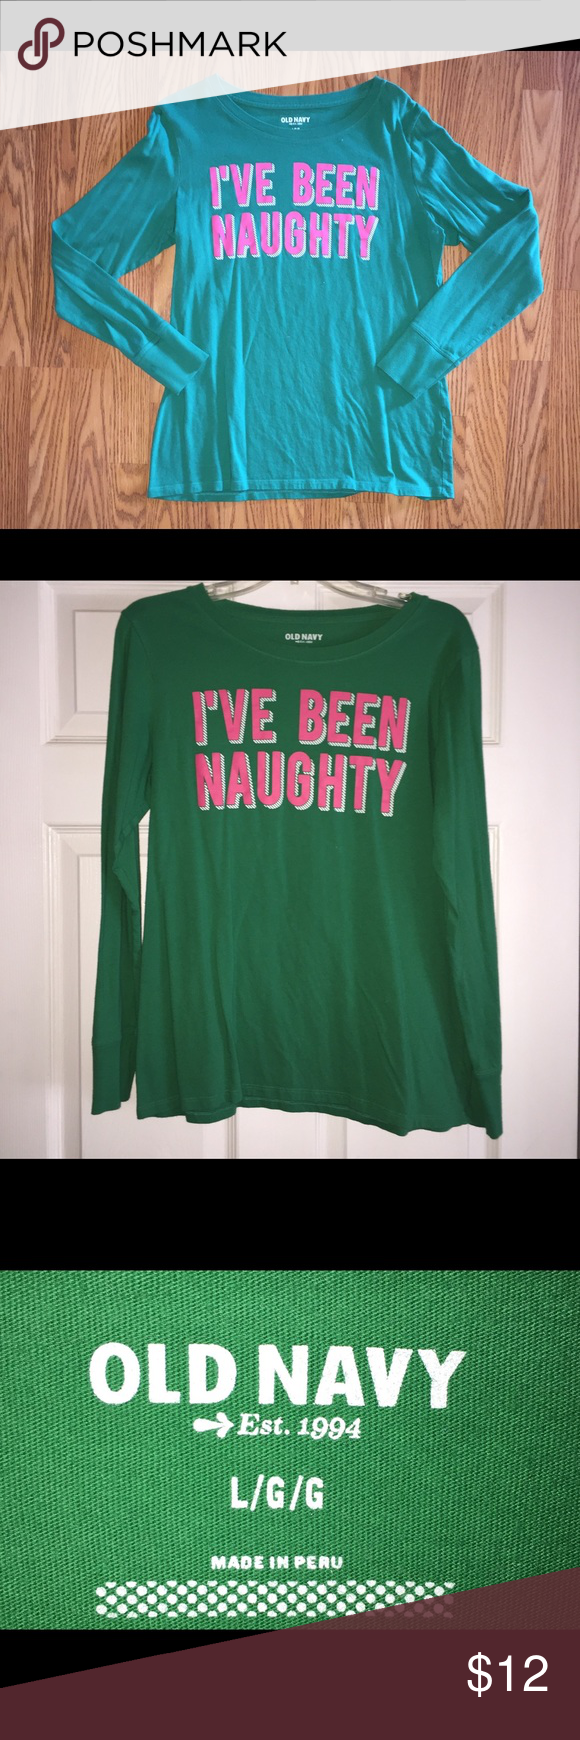 Old Navy Christmas Shirt